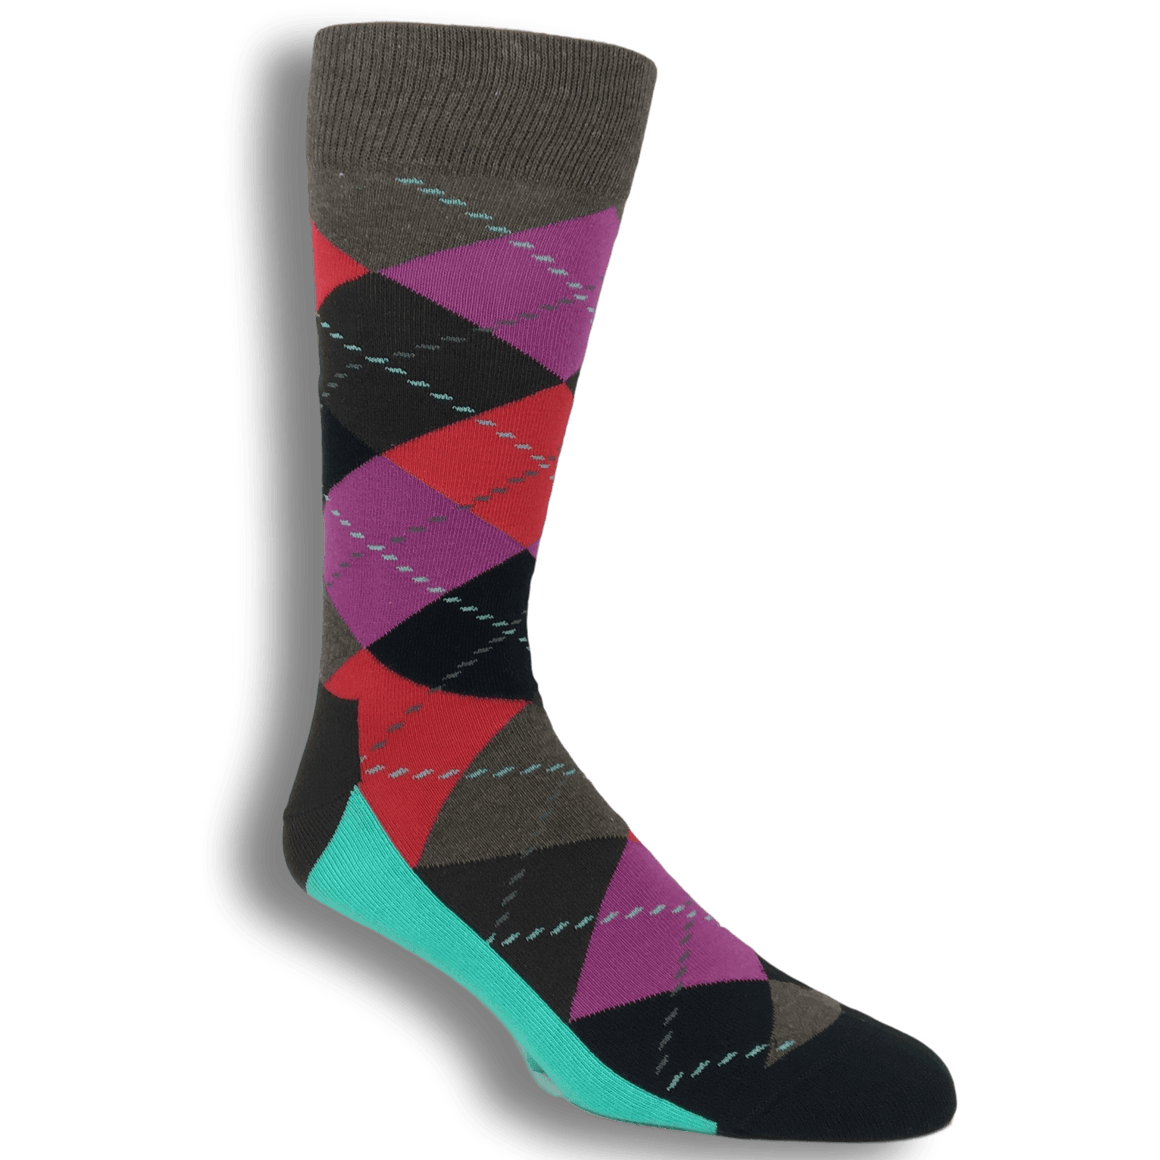 Socks - Teal, Red, And Grey Argyle Socks By Happy Socks